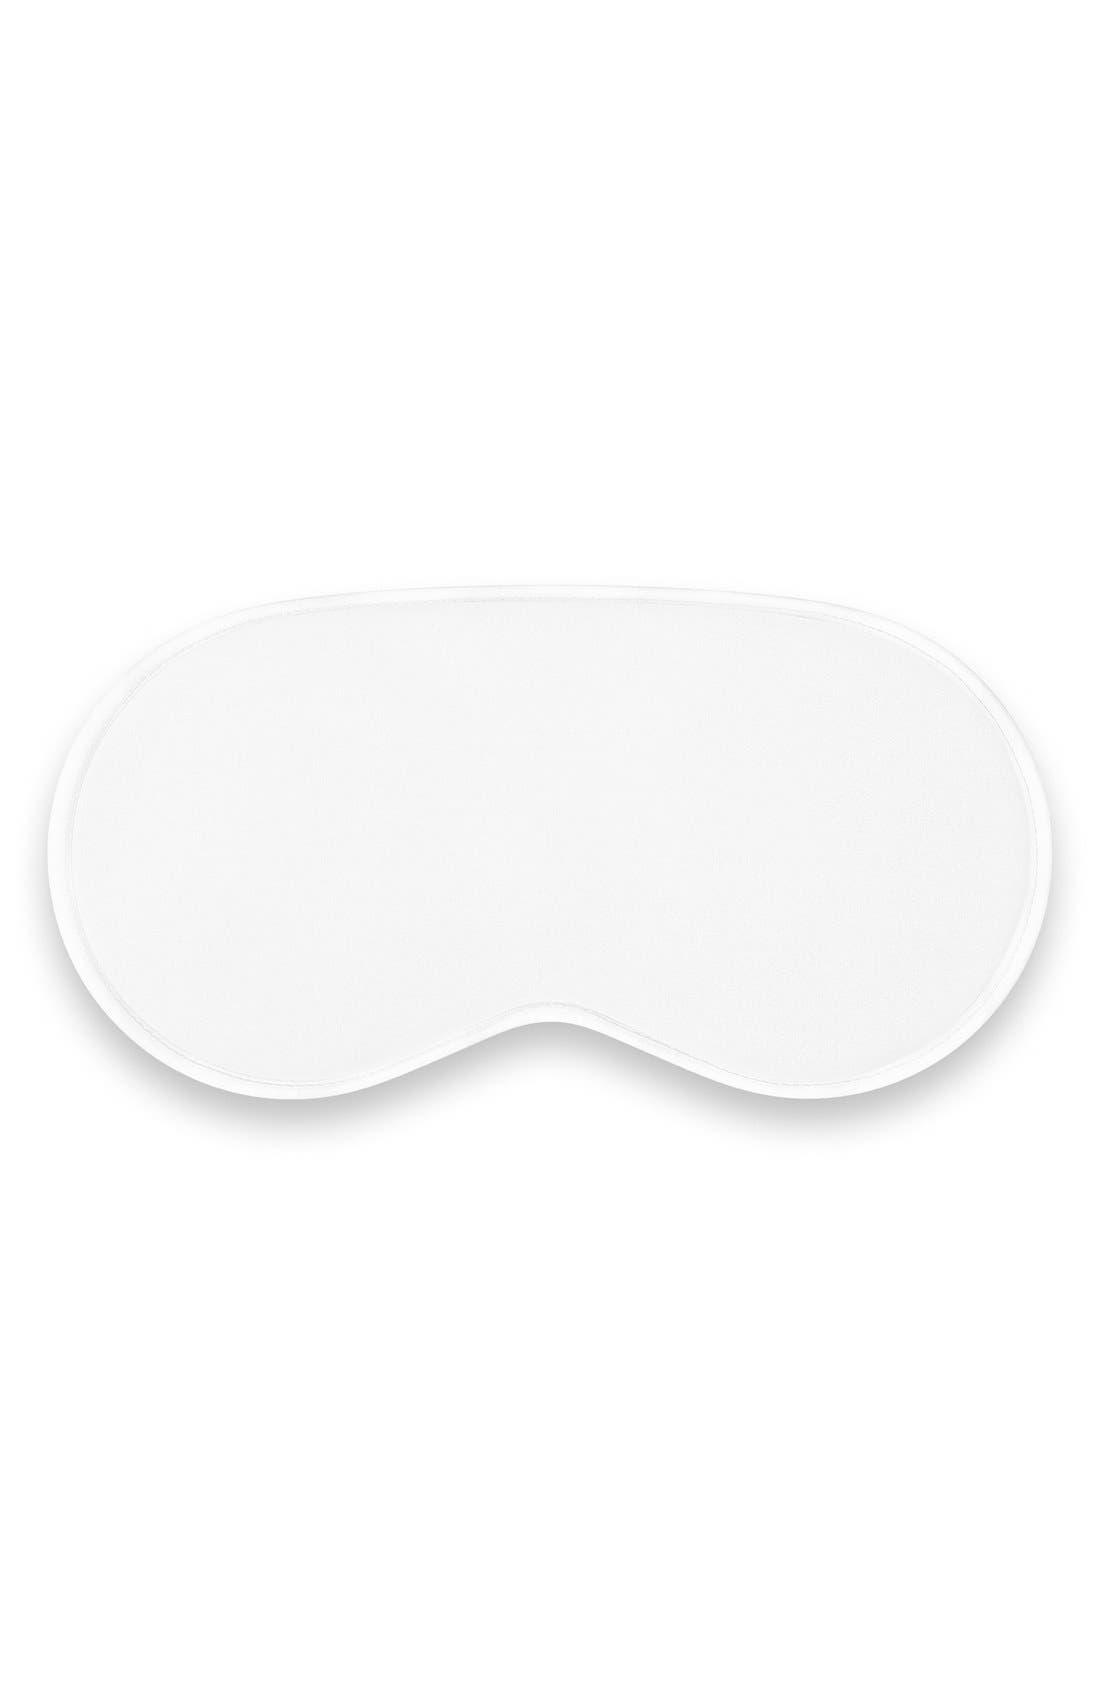 Glow Beauty Boosting Eye Mask,                             Main thumbnail 1, color,                             000